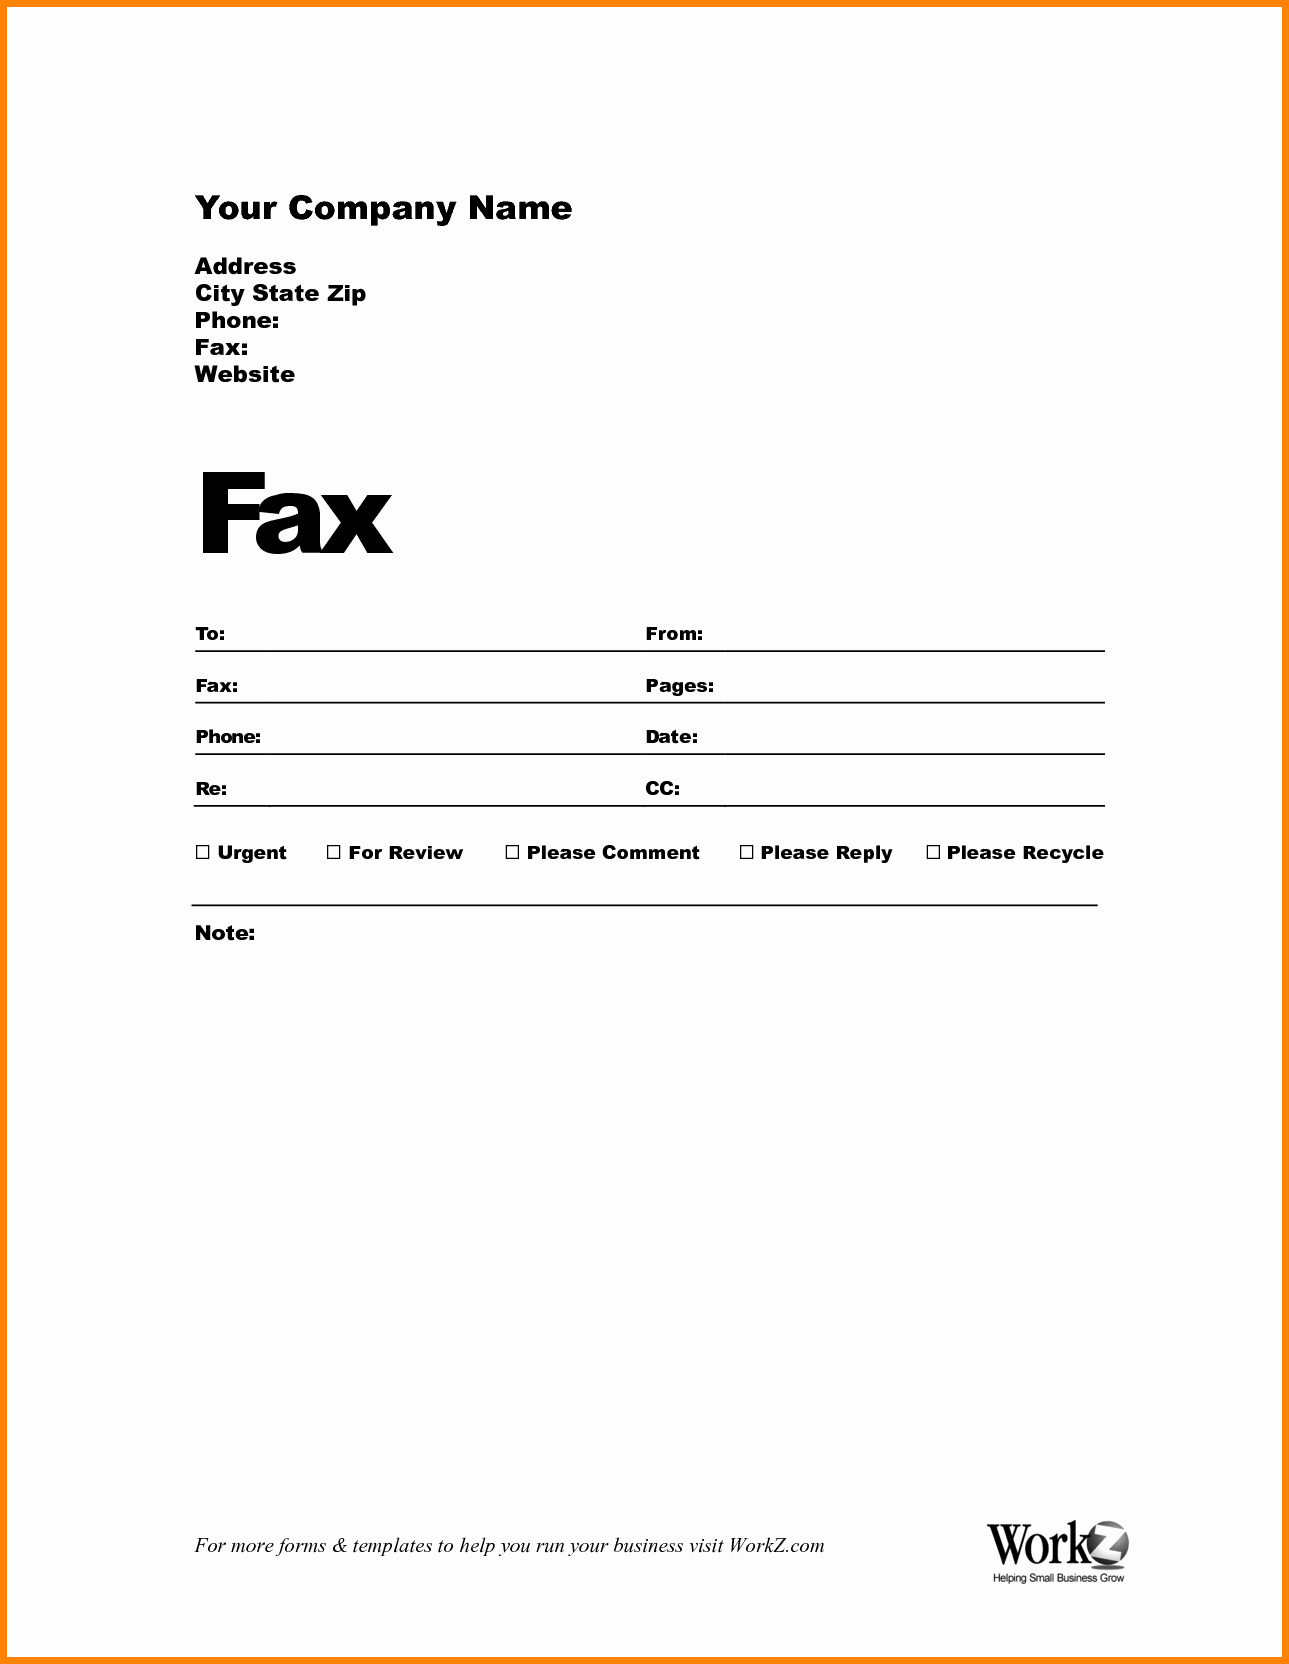 Fax Cover Sheet Download Free Lovely Fax Cover Sheets Cover Trakore Document Templates